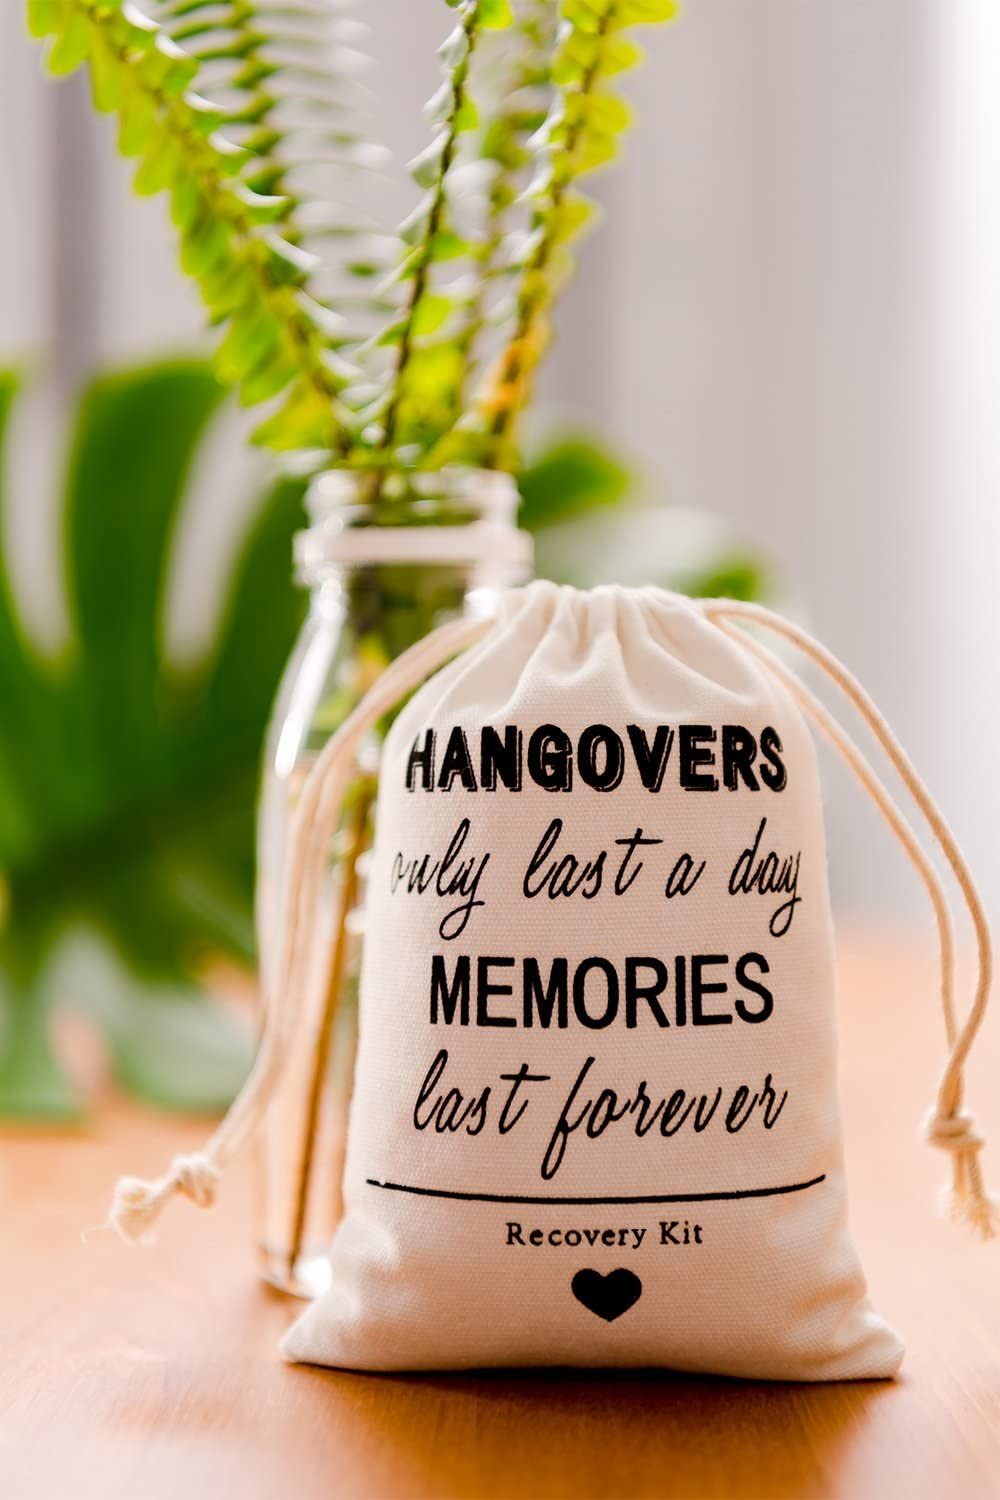 200 Birthday favor bags bachelorette party wedding bridal shower hangover recovery kit survival kit Hangovers only last a day memories last